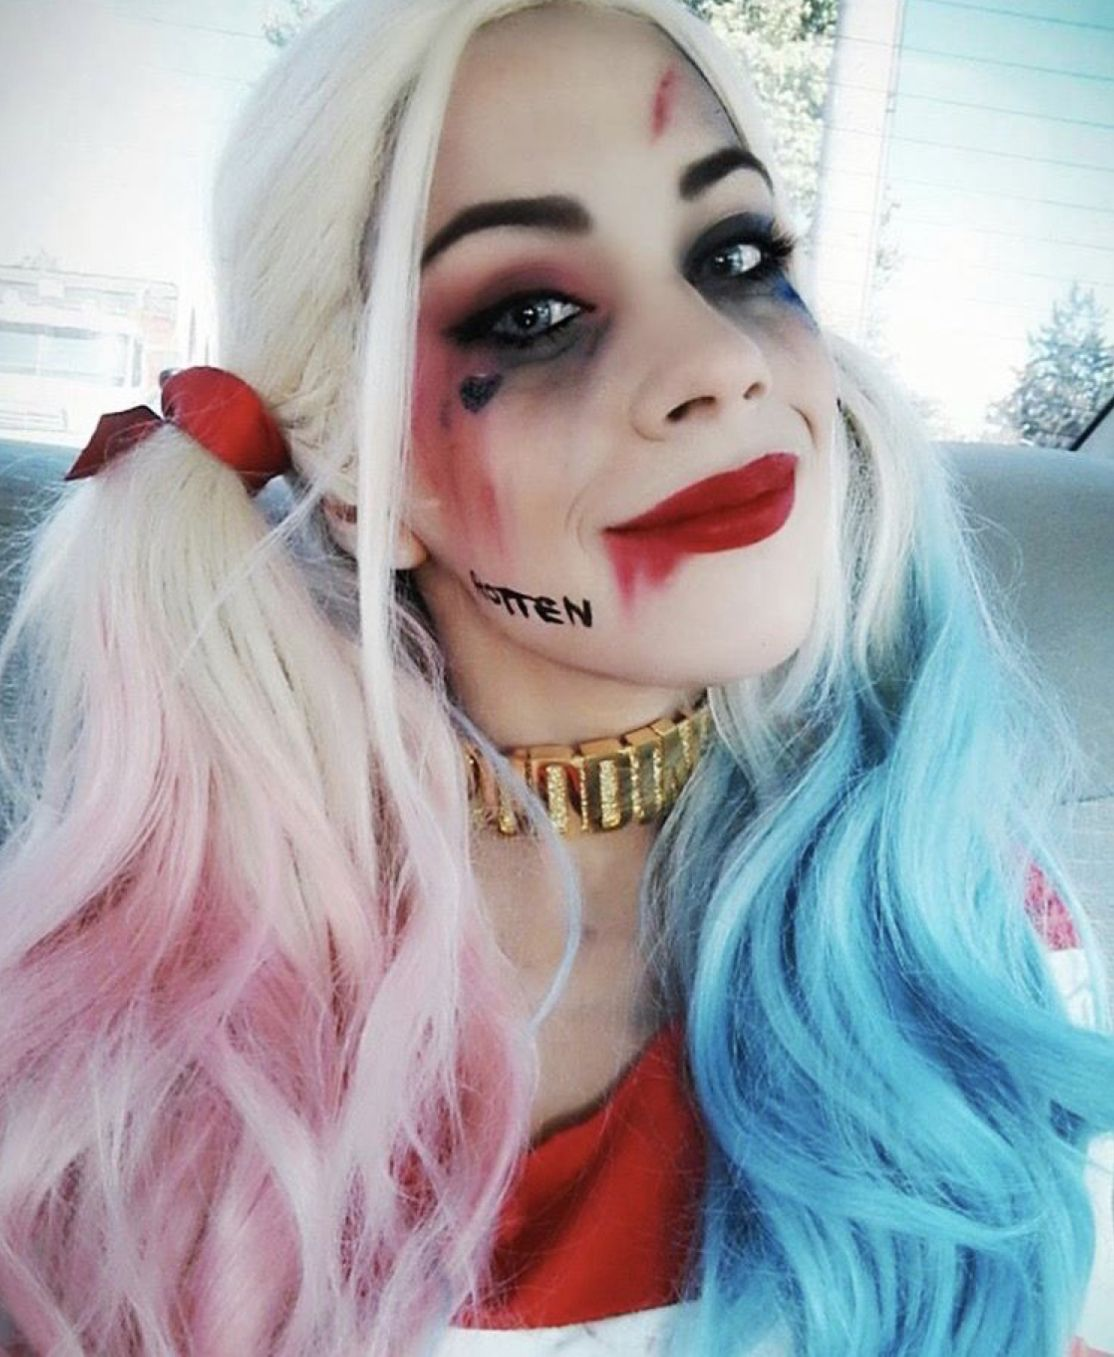 Photo of Harley Quinn cosplay realistic wigs, colorful pastel full lace front wigs, 24 in (60 cm), wavy long pink blue ombre HEAT SAFE